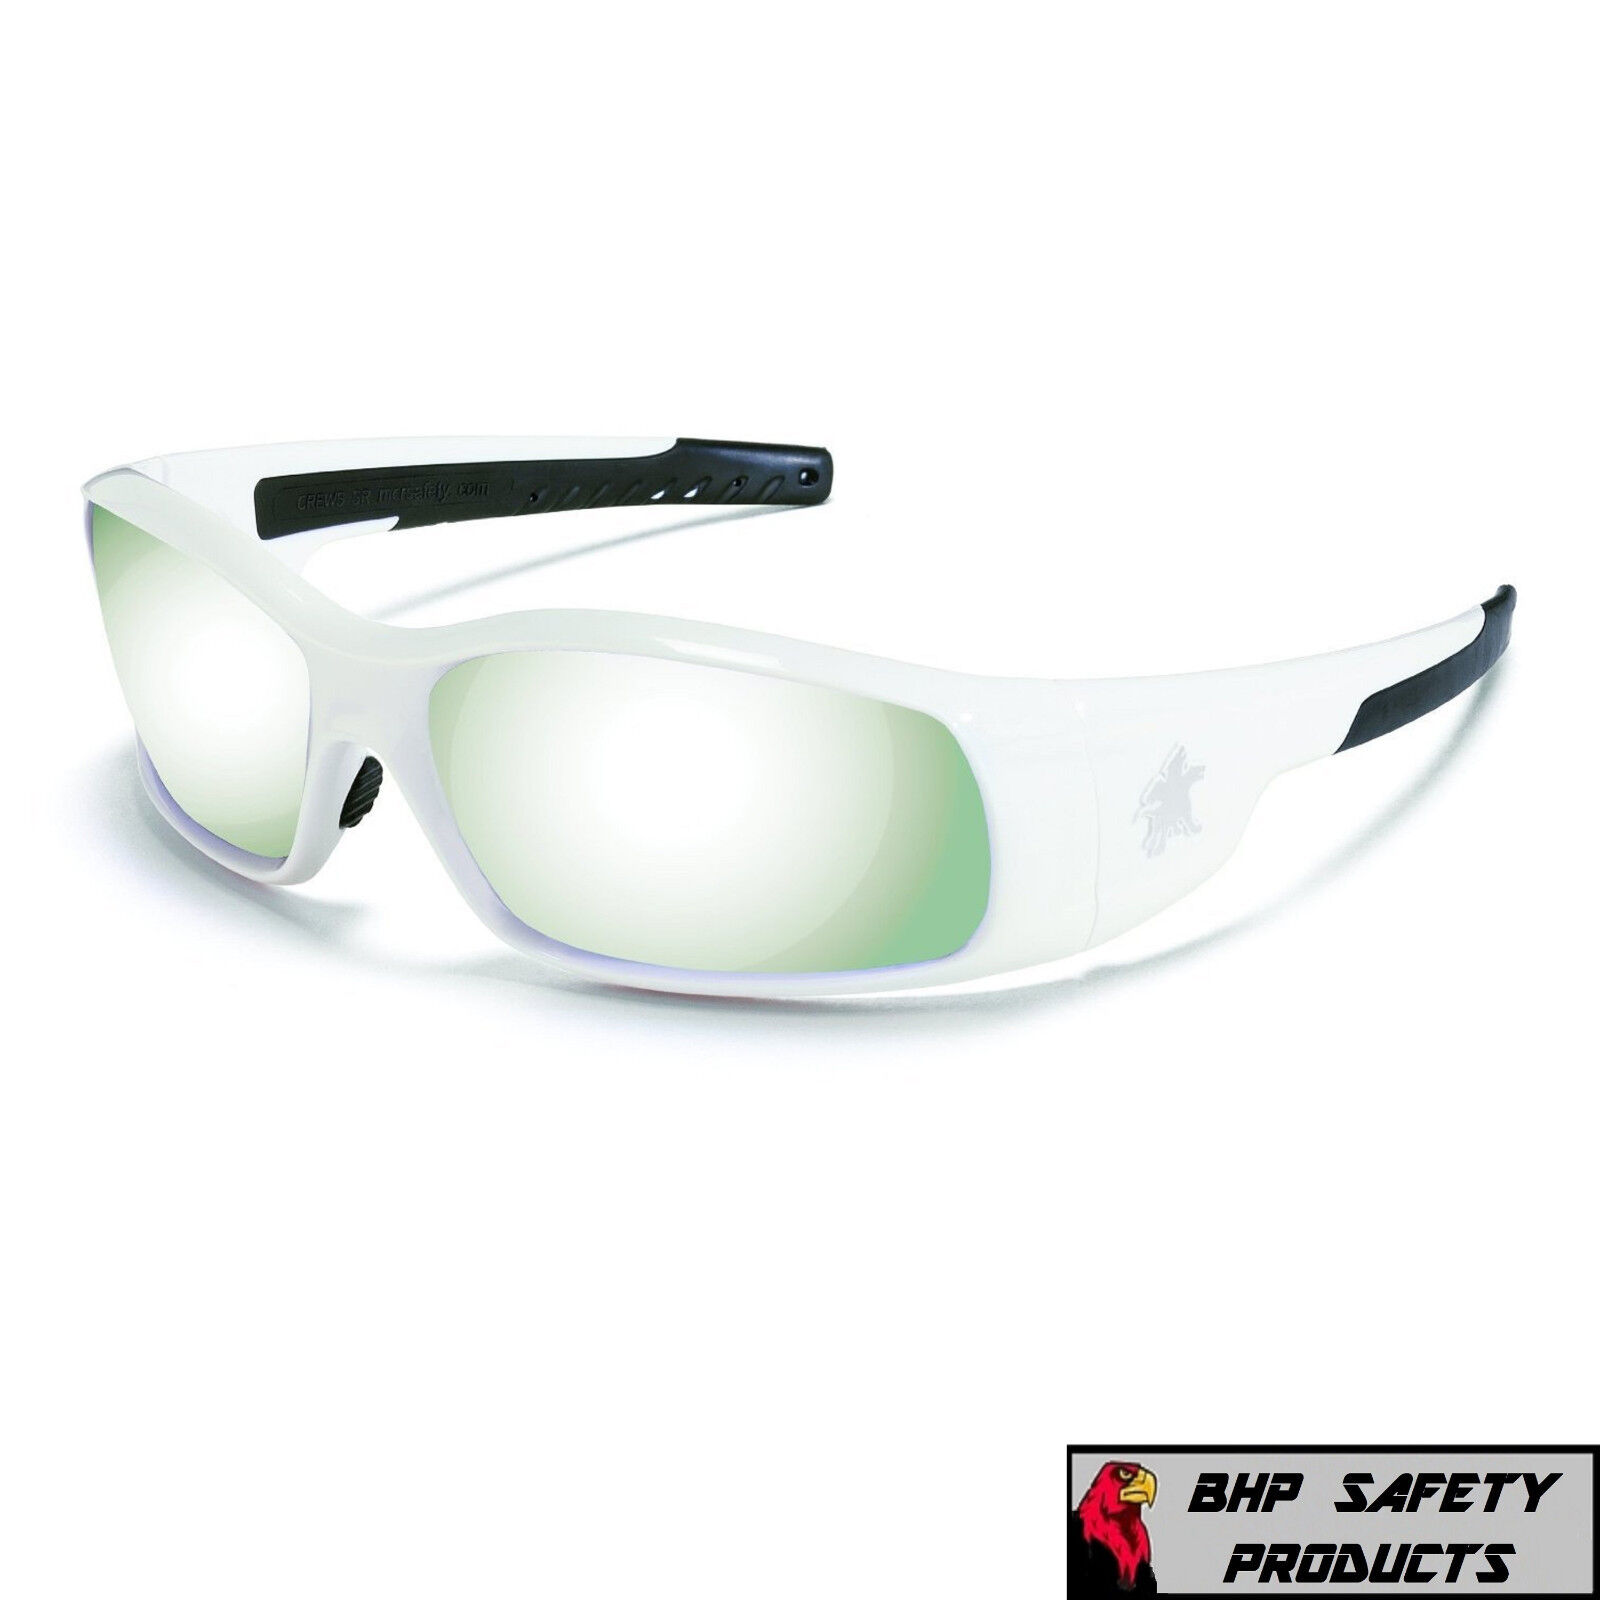 MCR CREWS SWAGGER SAFETY GLASSES SUNGLASSES WORK SPORT EYEWEAR CHOOSE YOUR COLOR SR127 SILVER MIRROR/WHITE FRAME